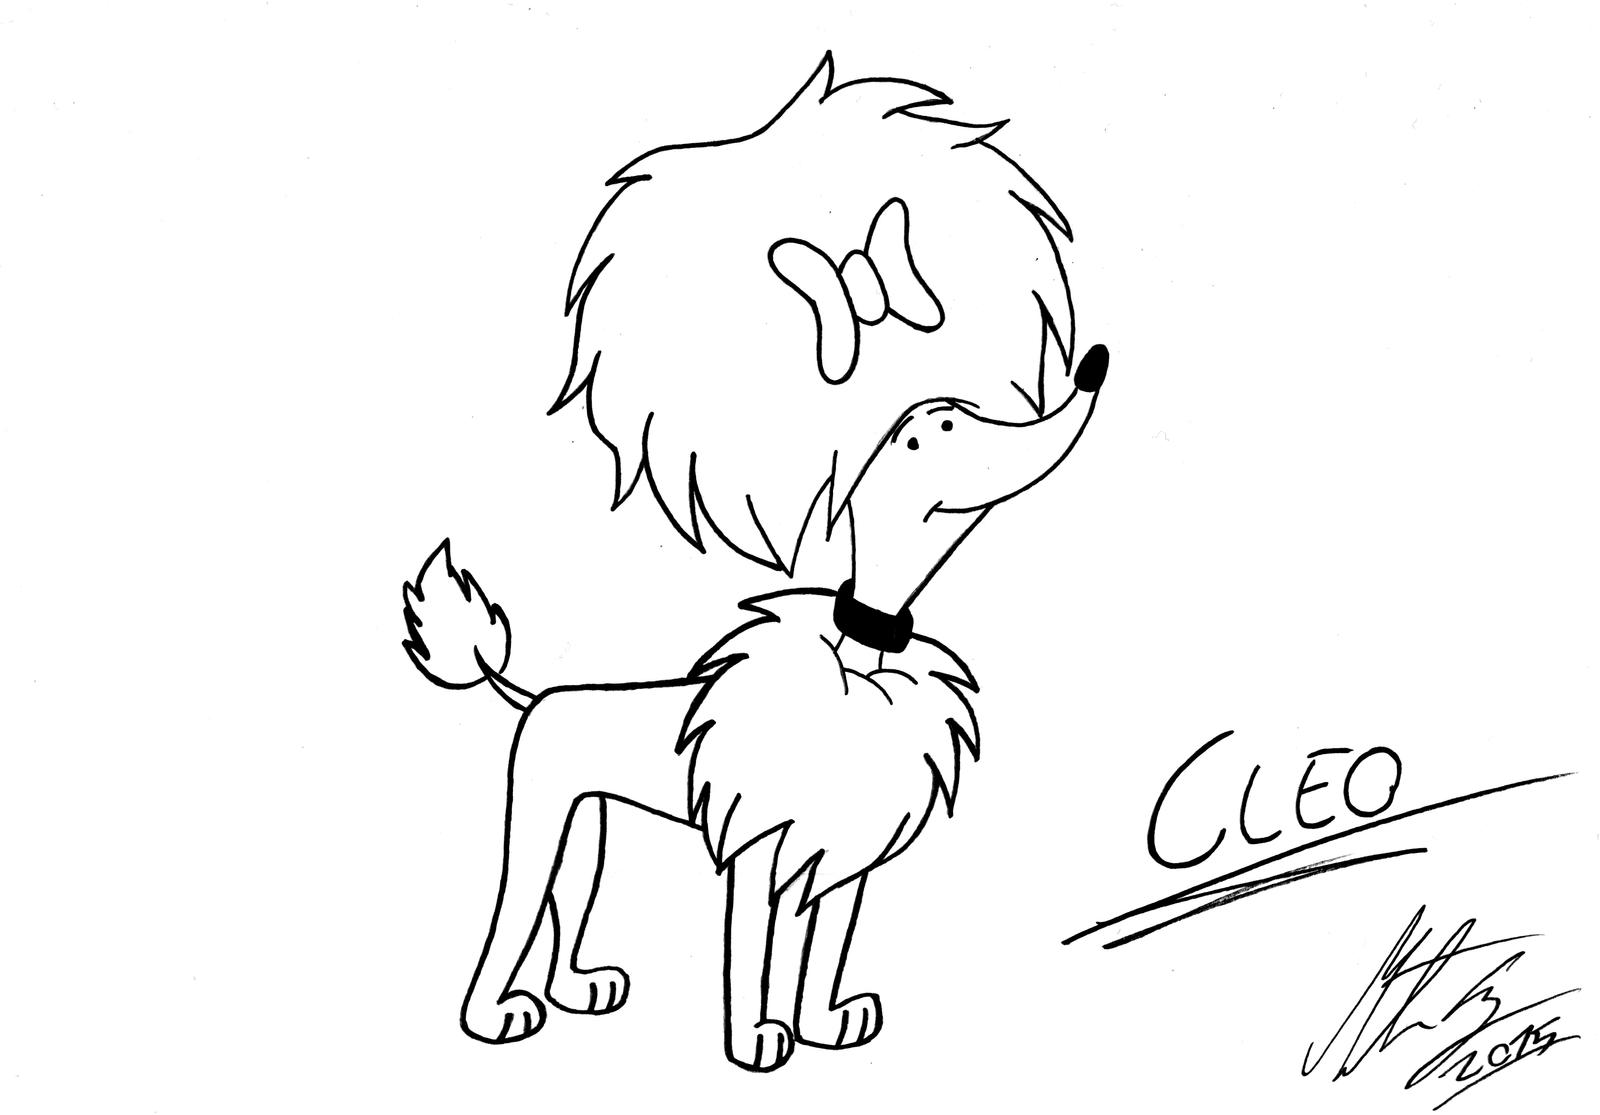 Clifford Cleo Coloring Pages related Keywords and Tags